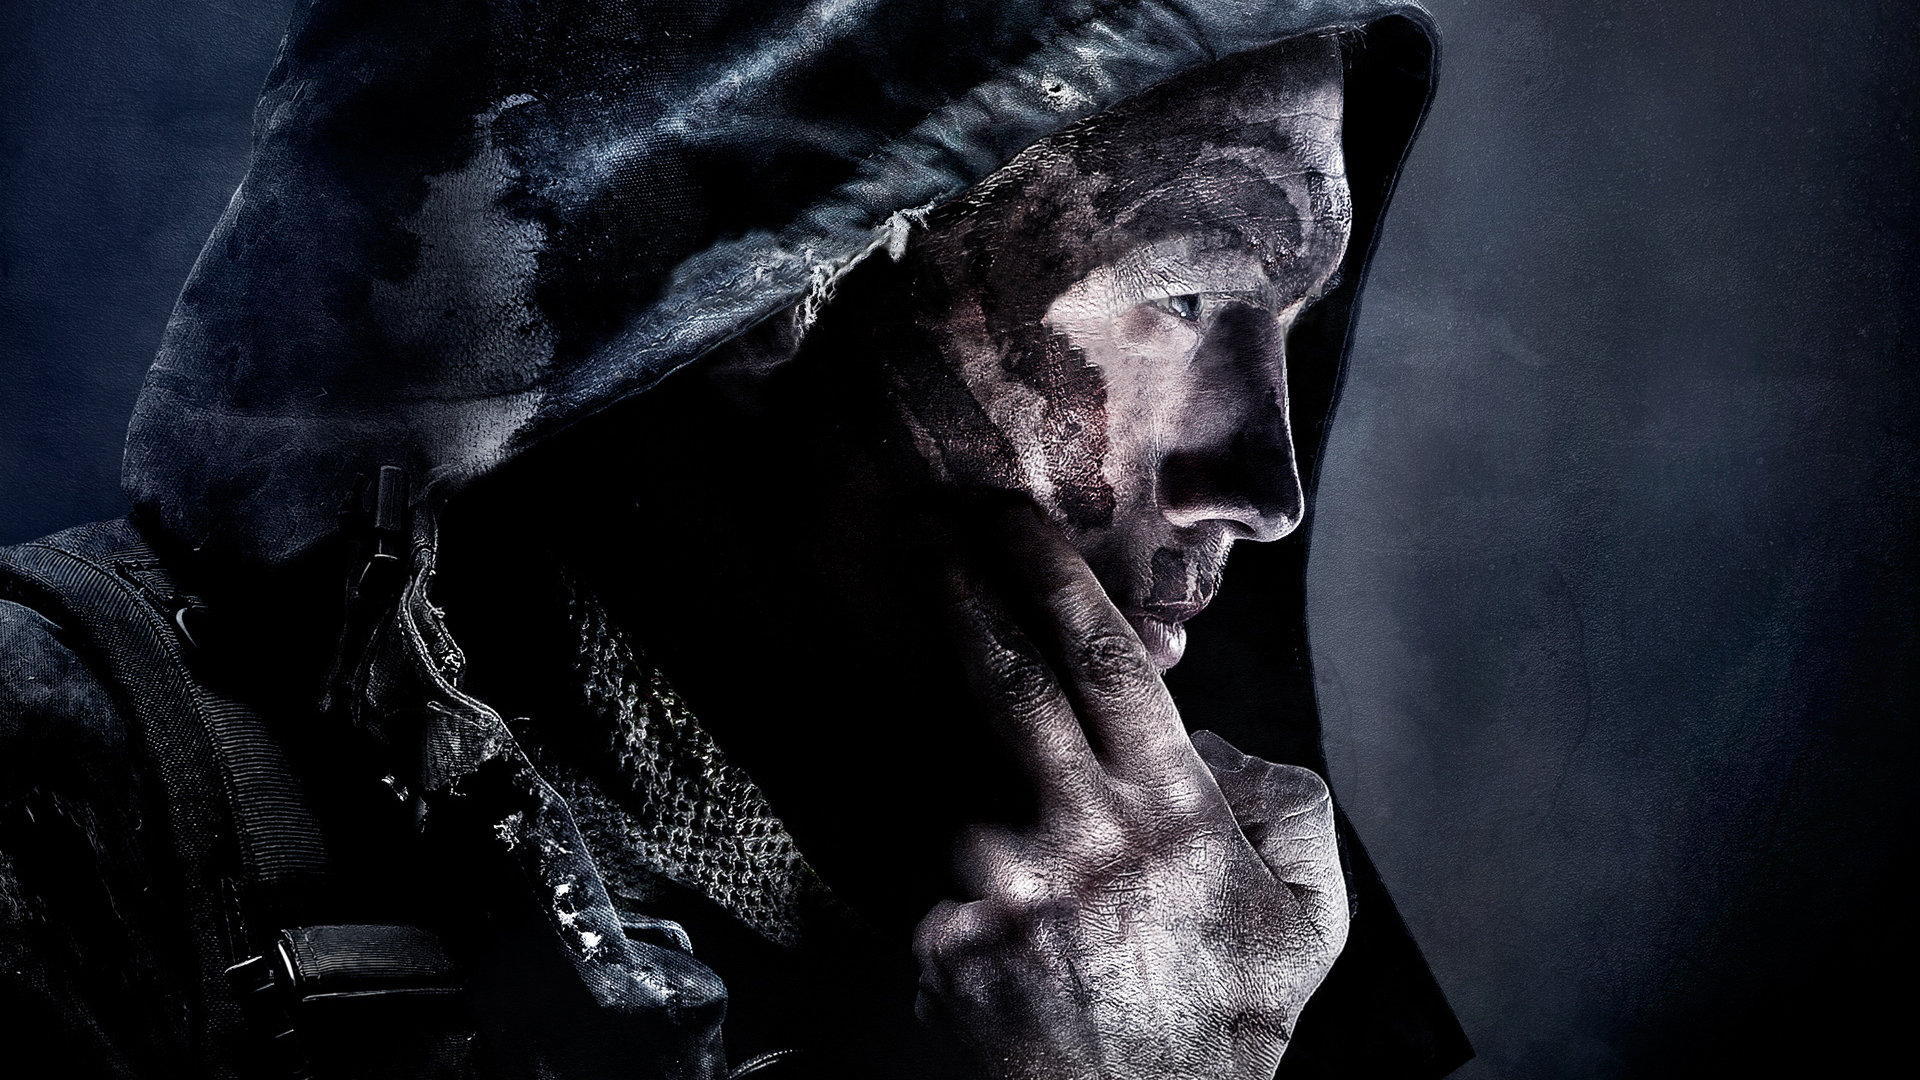 Free Call Of Duty Ghosts High Quality Wallpaper Id 215907 For Full Hd Pc